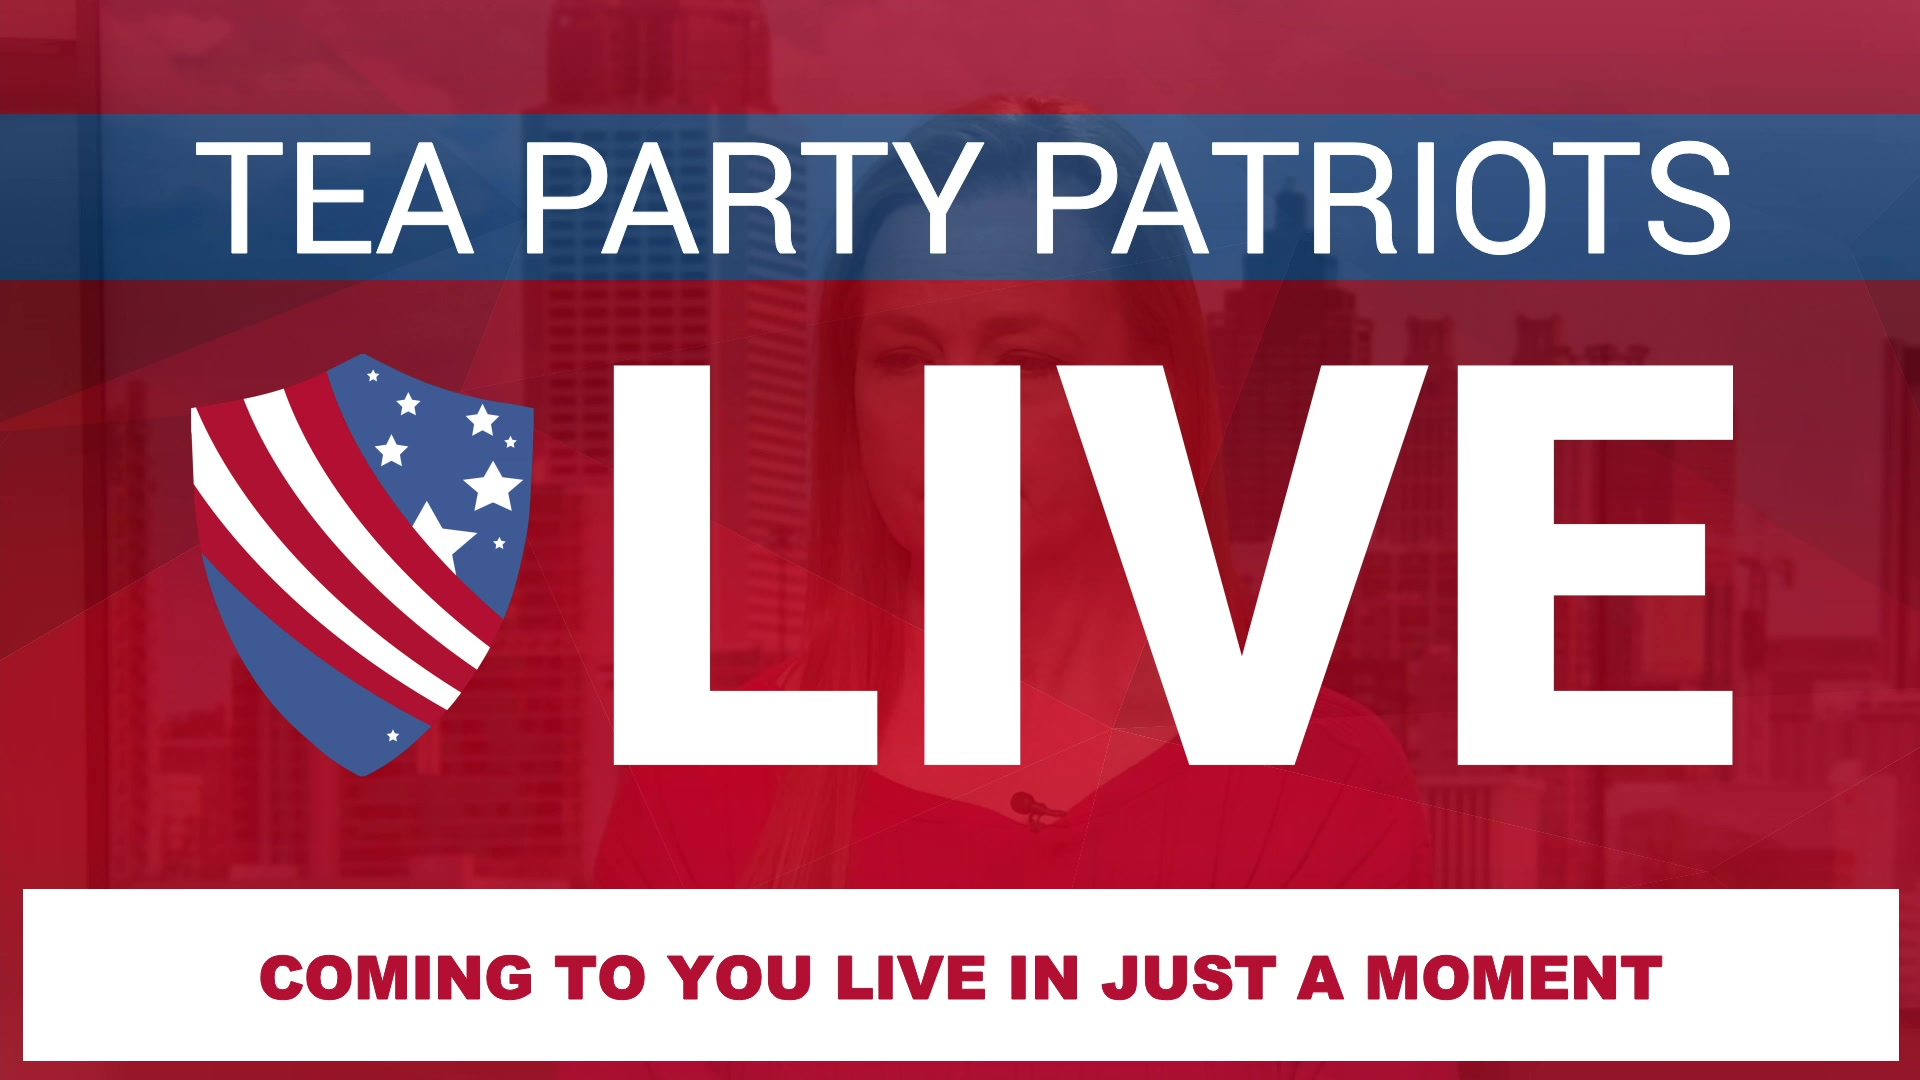 tea-party-patriots-lunchbreak-live-12-7-20-today-on-tea-party-patriots-action-s-lunchbreak-live-government-funding-runs-out-at-midnight-friday-will-th_thumbnail.jpg